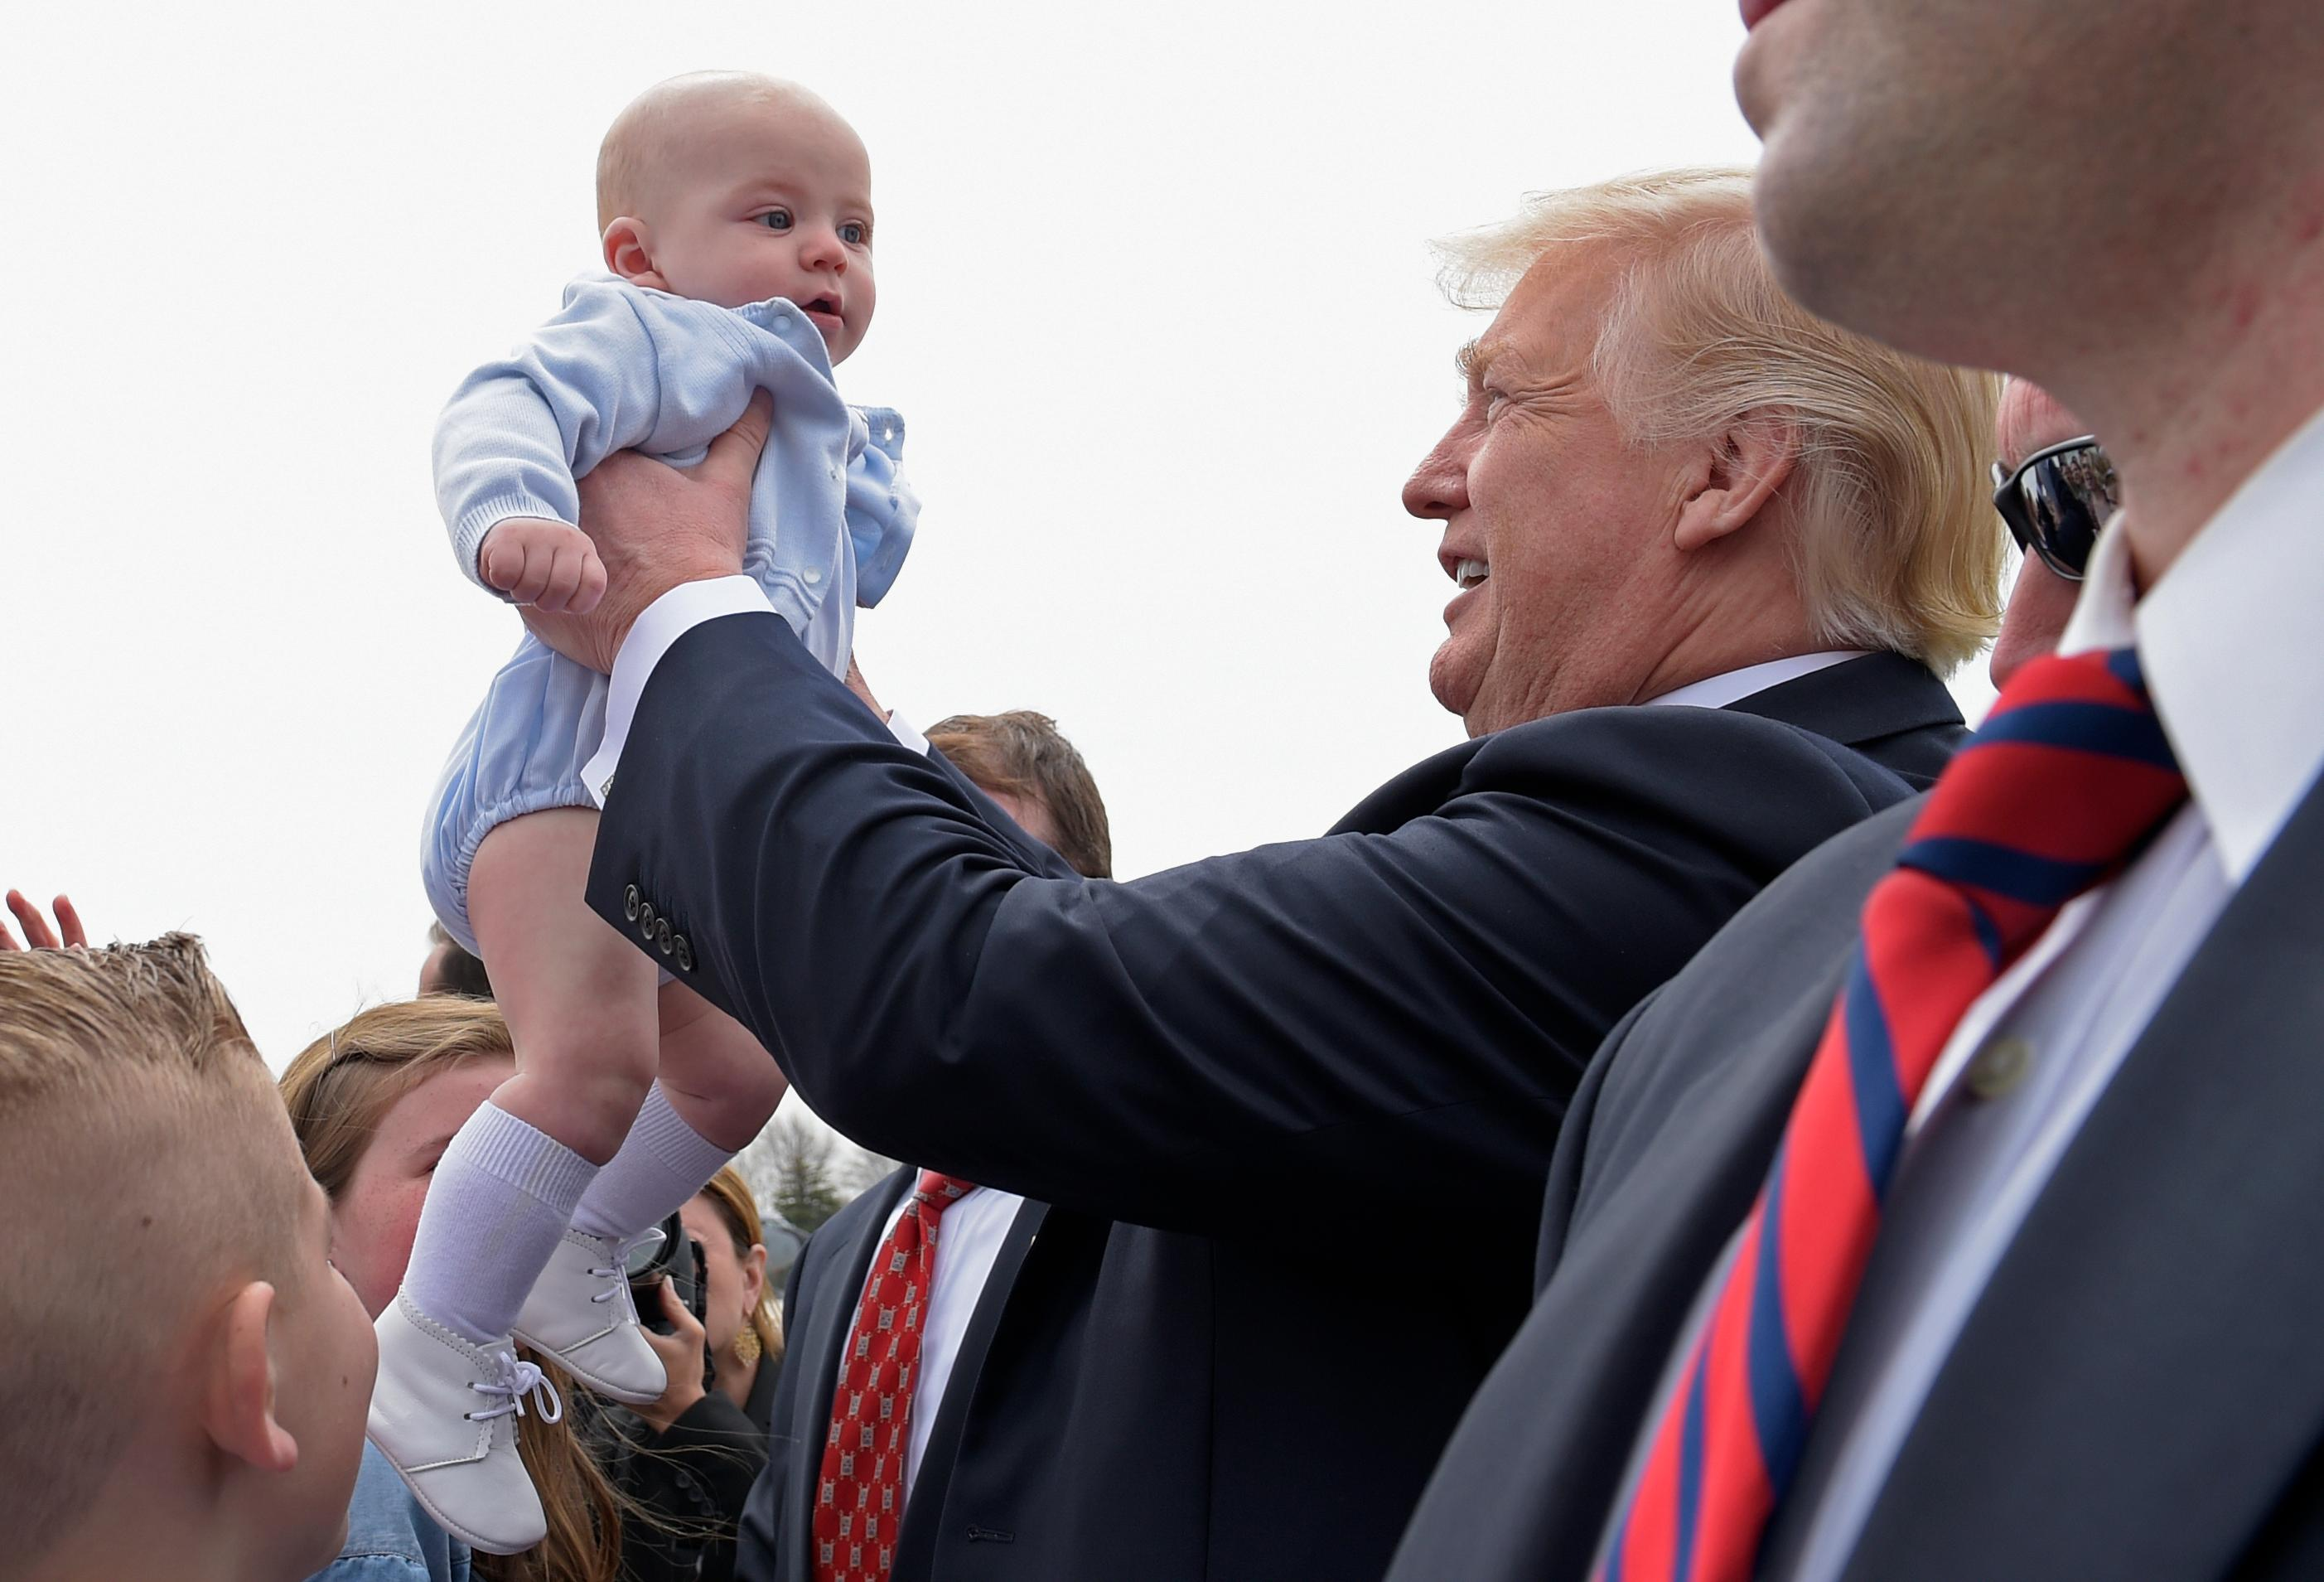 President Donald Trump picks up a baby as he greets people after arriving on Air Force One at General Mitchell International Airport in Milwaukee, Tuesday, April 18, 2017. Trump is heading to Kenosha, Wis., to visit the headquarters of tool manufacturer Snap-on Inc., and sign an executive order that seeks to make changes to a visa program that brings in high-skilled workers. (AP Photo/Susan Walsh)